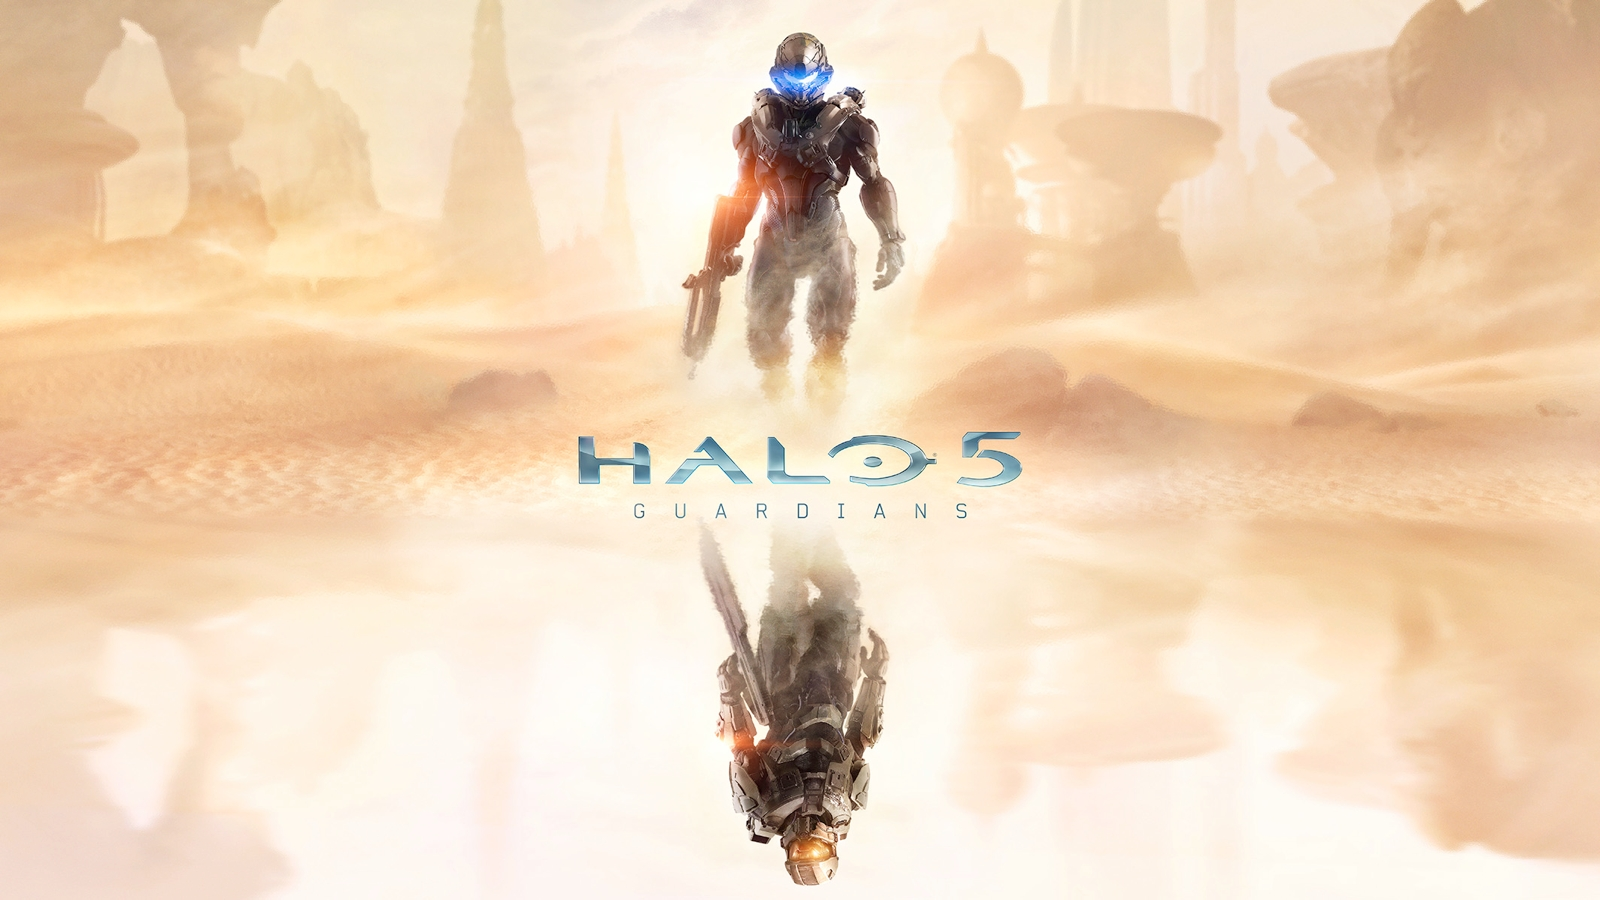 My Most Anticipated Title of 2015: Halo 5 Guardians, AKA Fine, I'll Buy an Xbox One